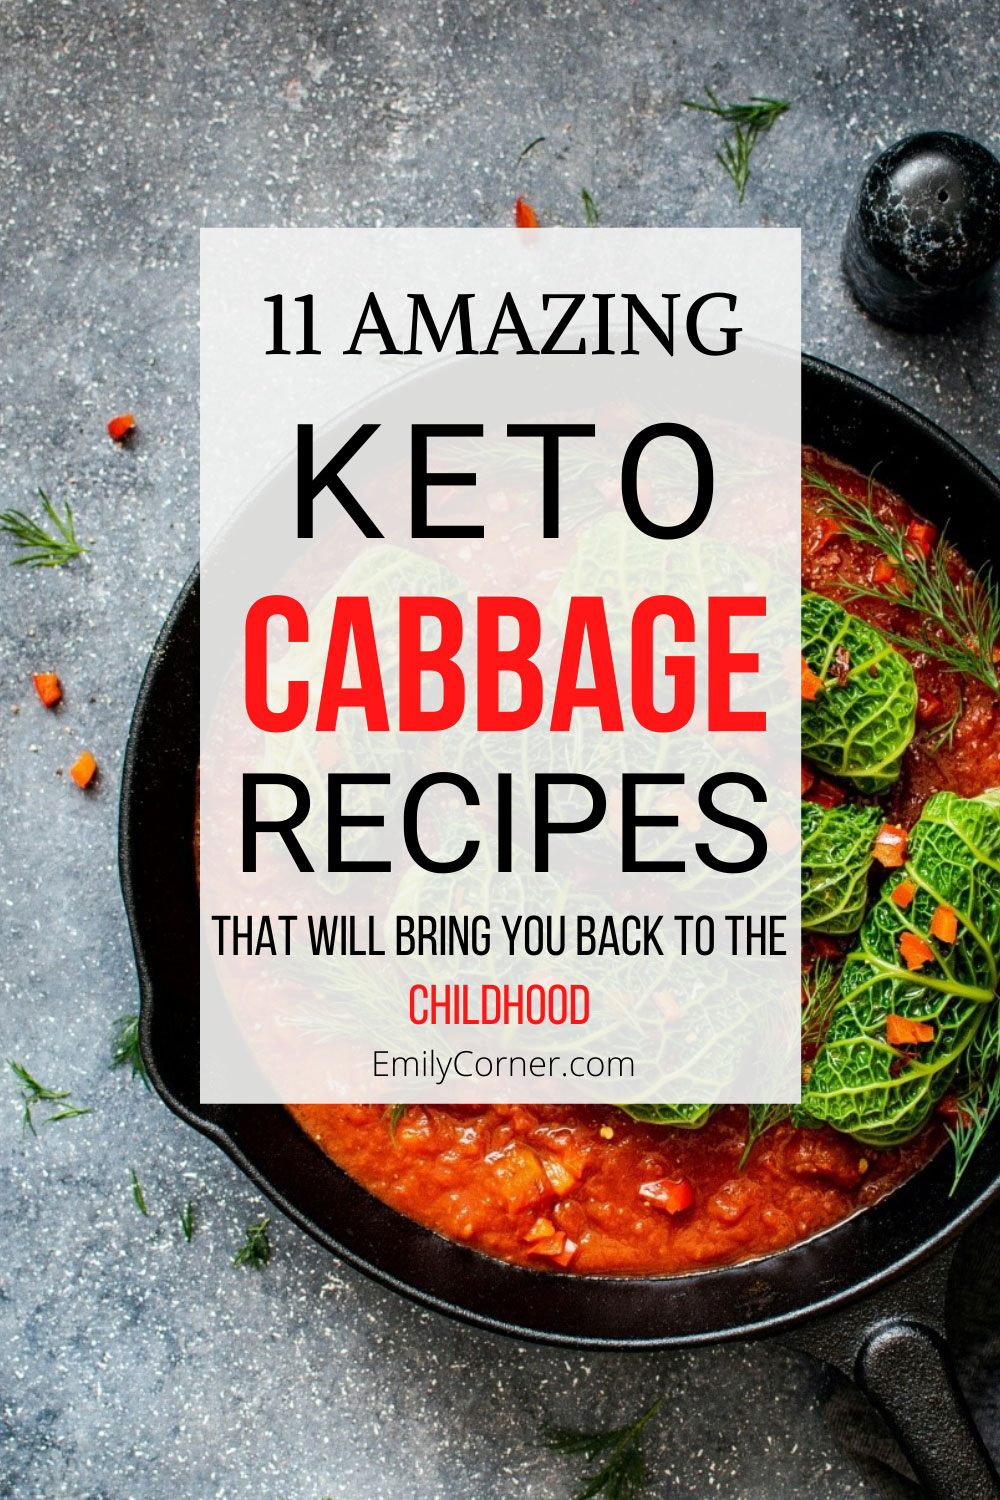 Keto Cabbage Recipes